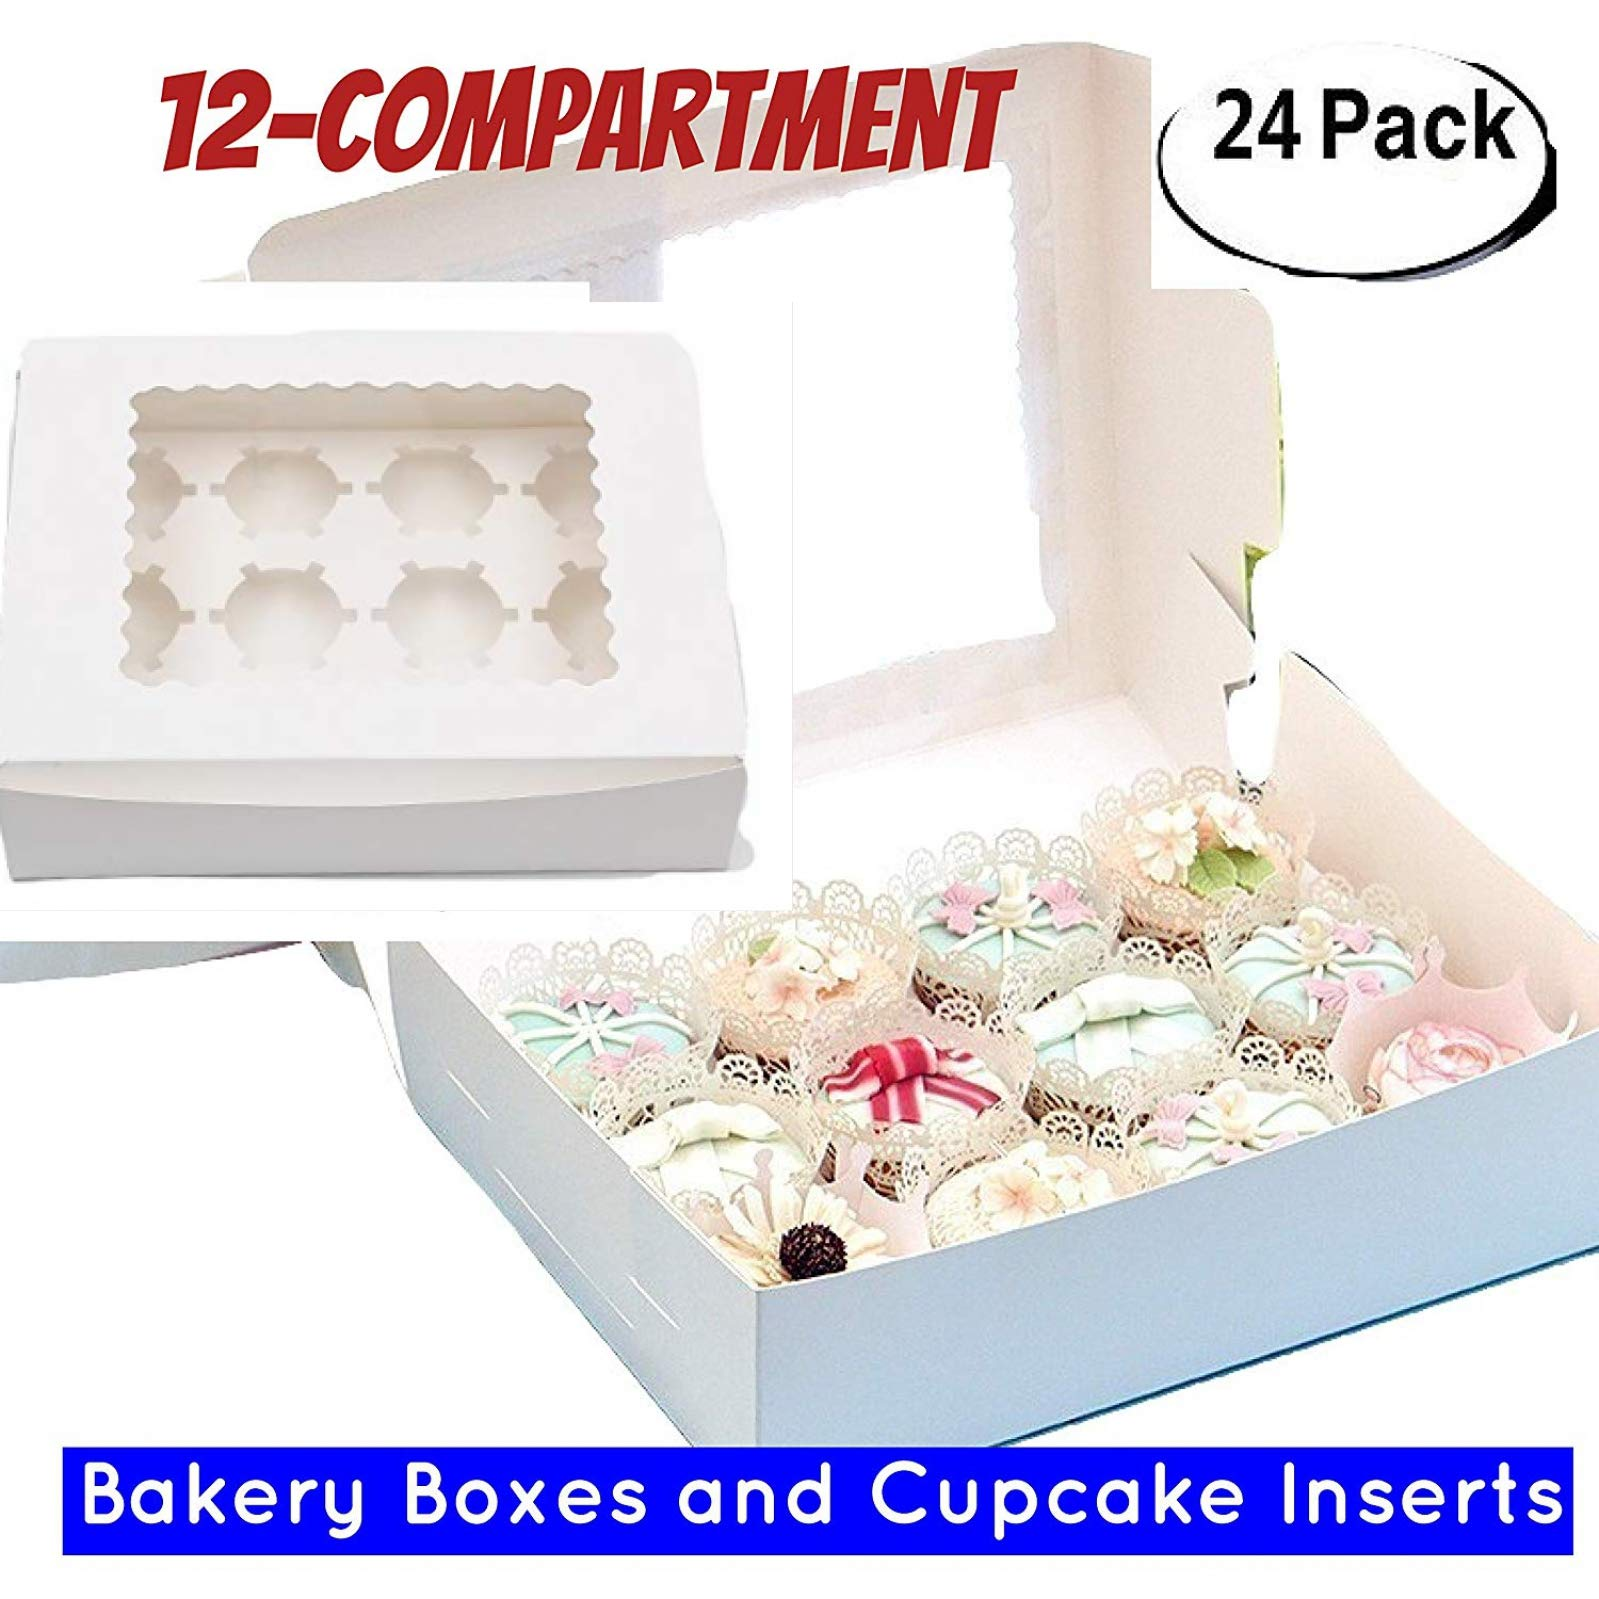 Window Bakery Cupcake Box With Insert, Bakery Boxes for Cupcakes with Display Window 12 Pack Cupcake Boxes (24, 14'' x 10'' x 4'')